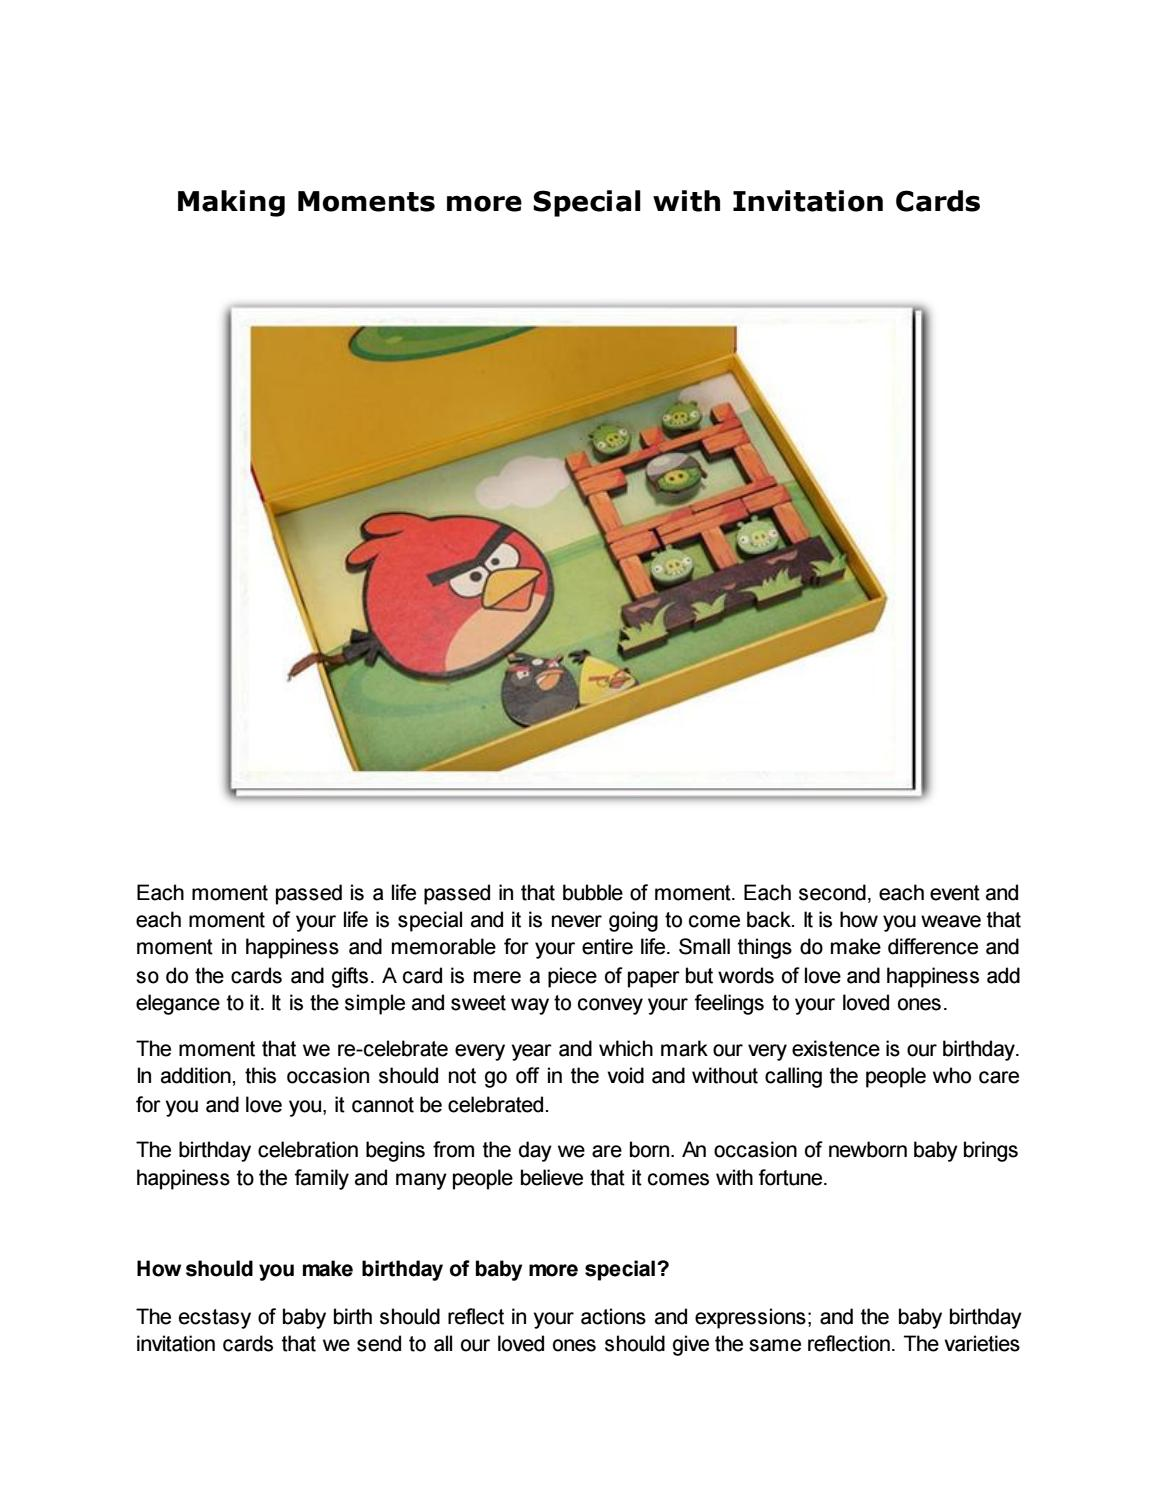 Making Moments More Special With Invitation Cards By Deepika